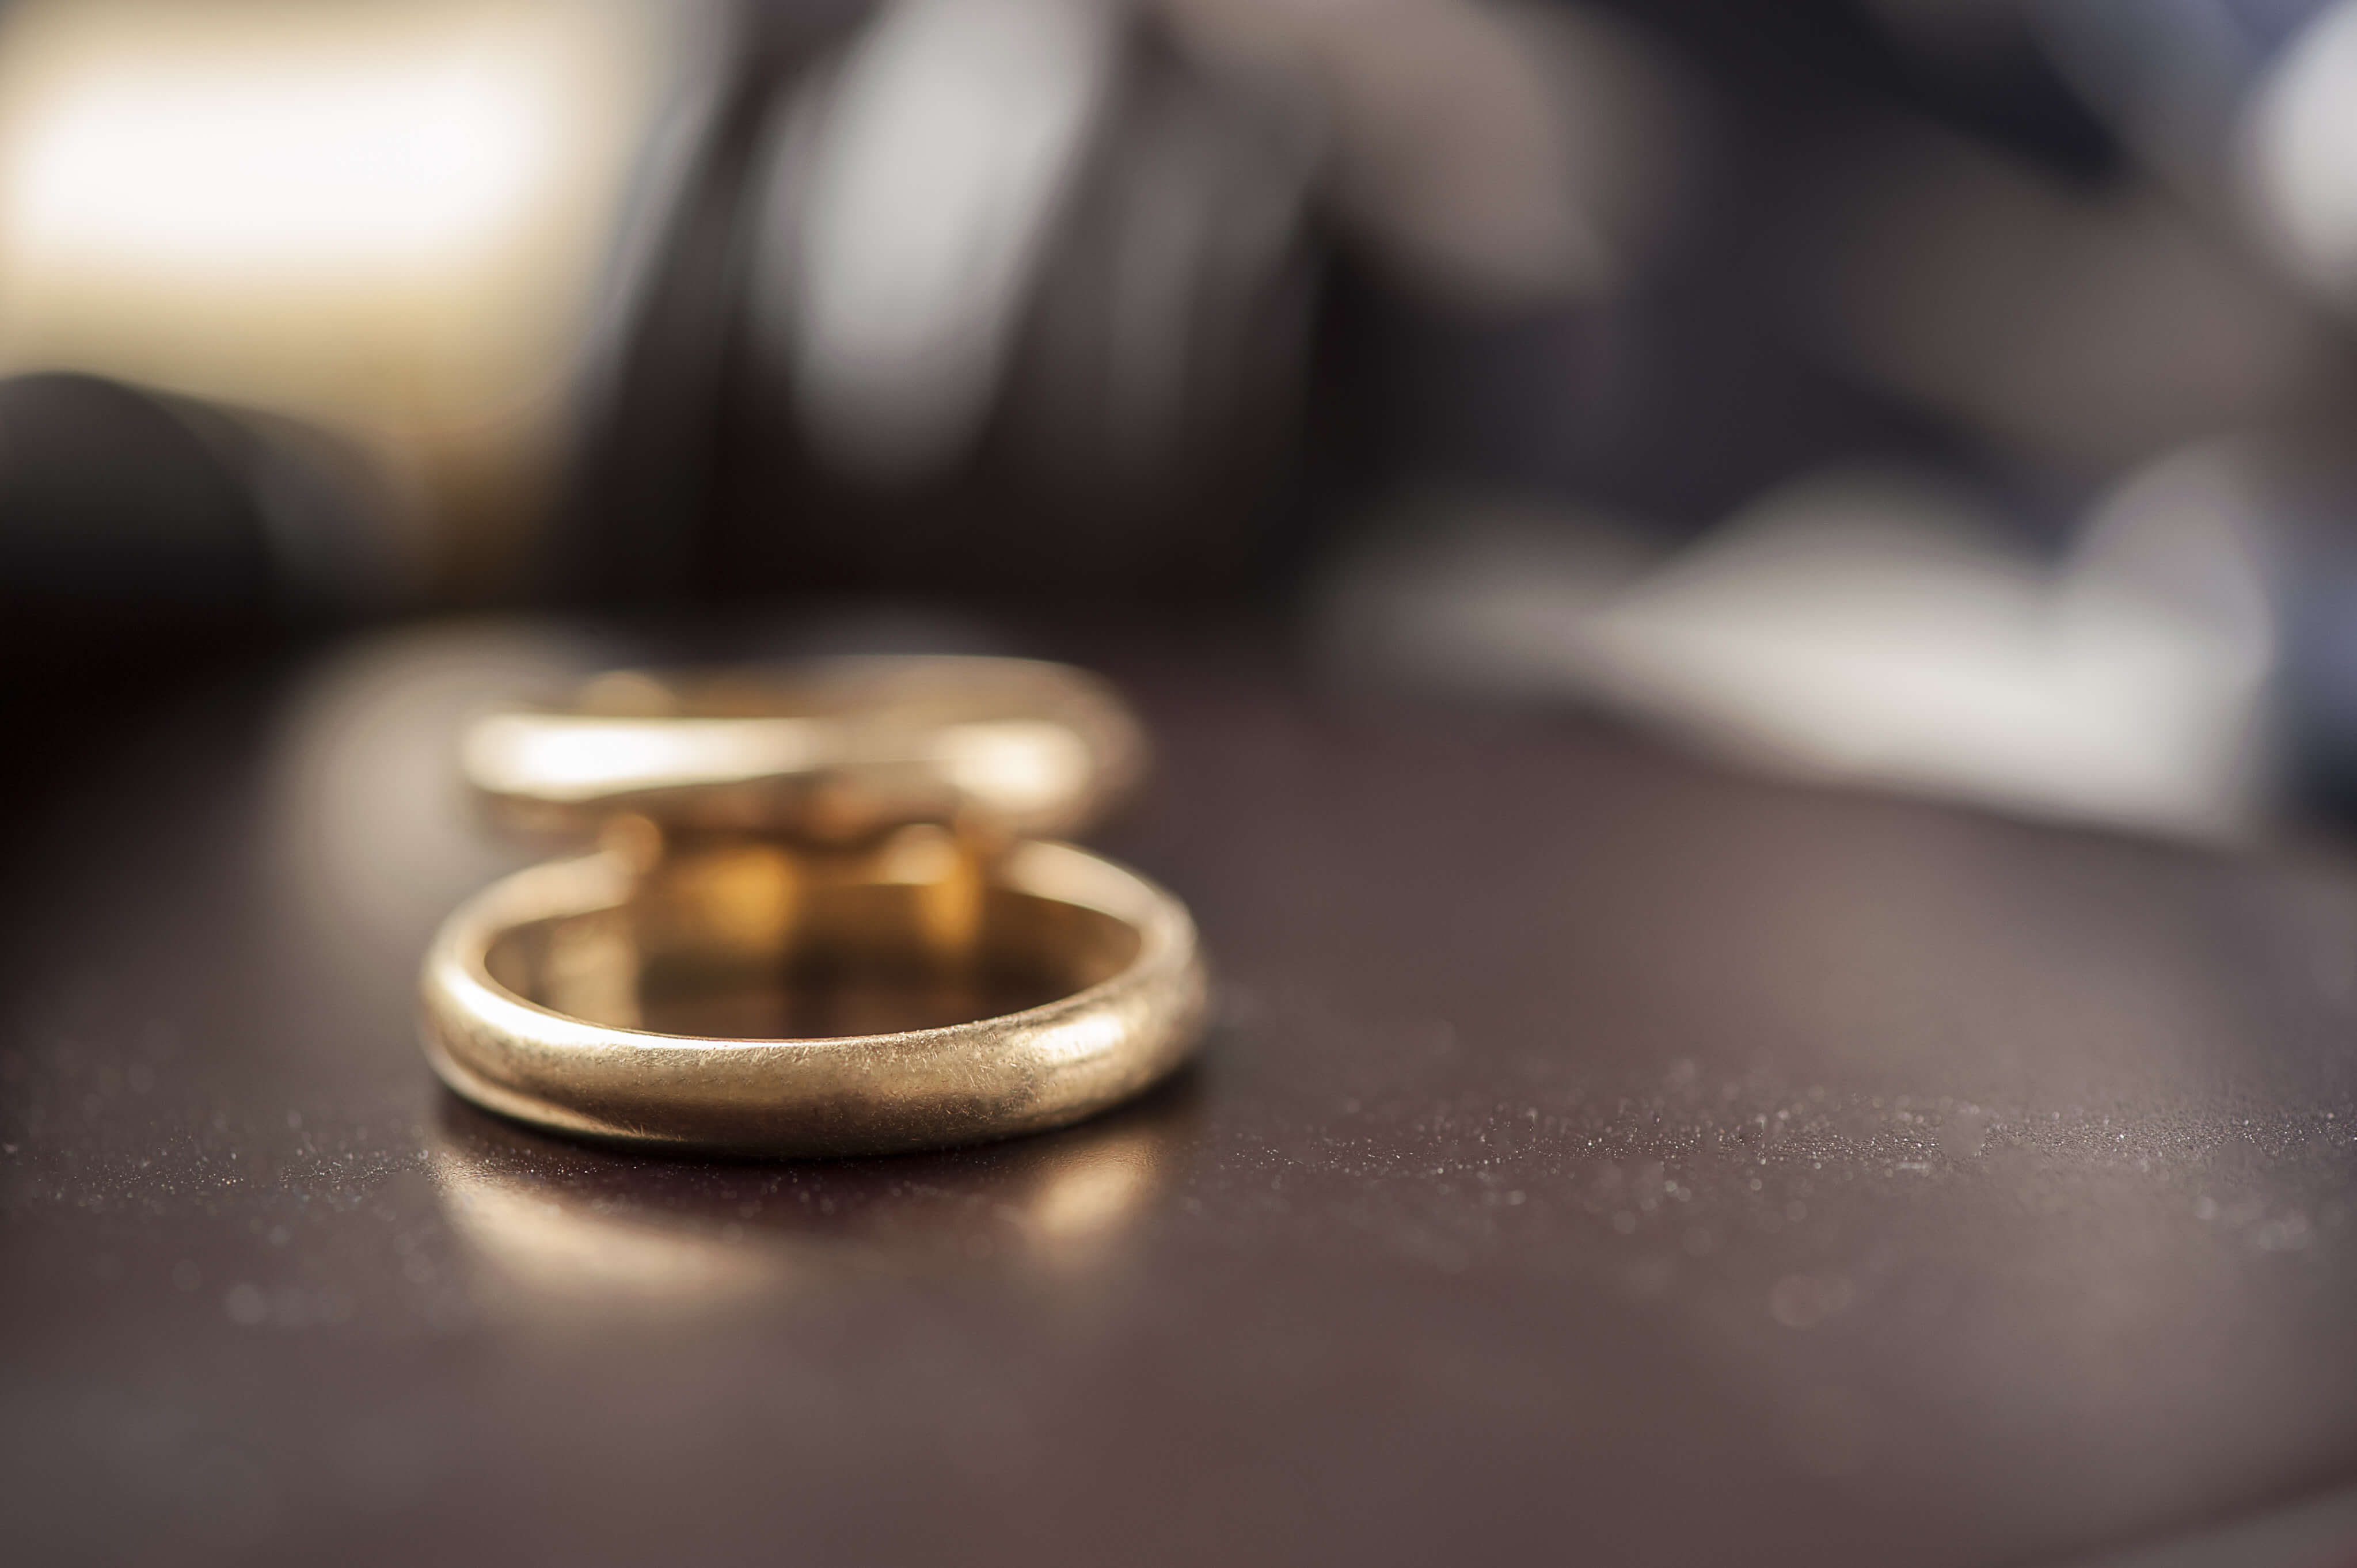 Two wedding rings sit on a lawyer's desk